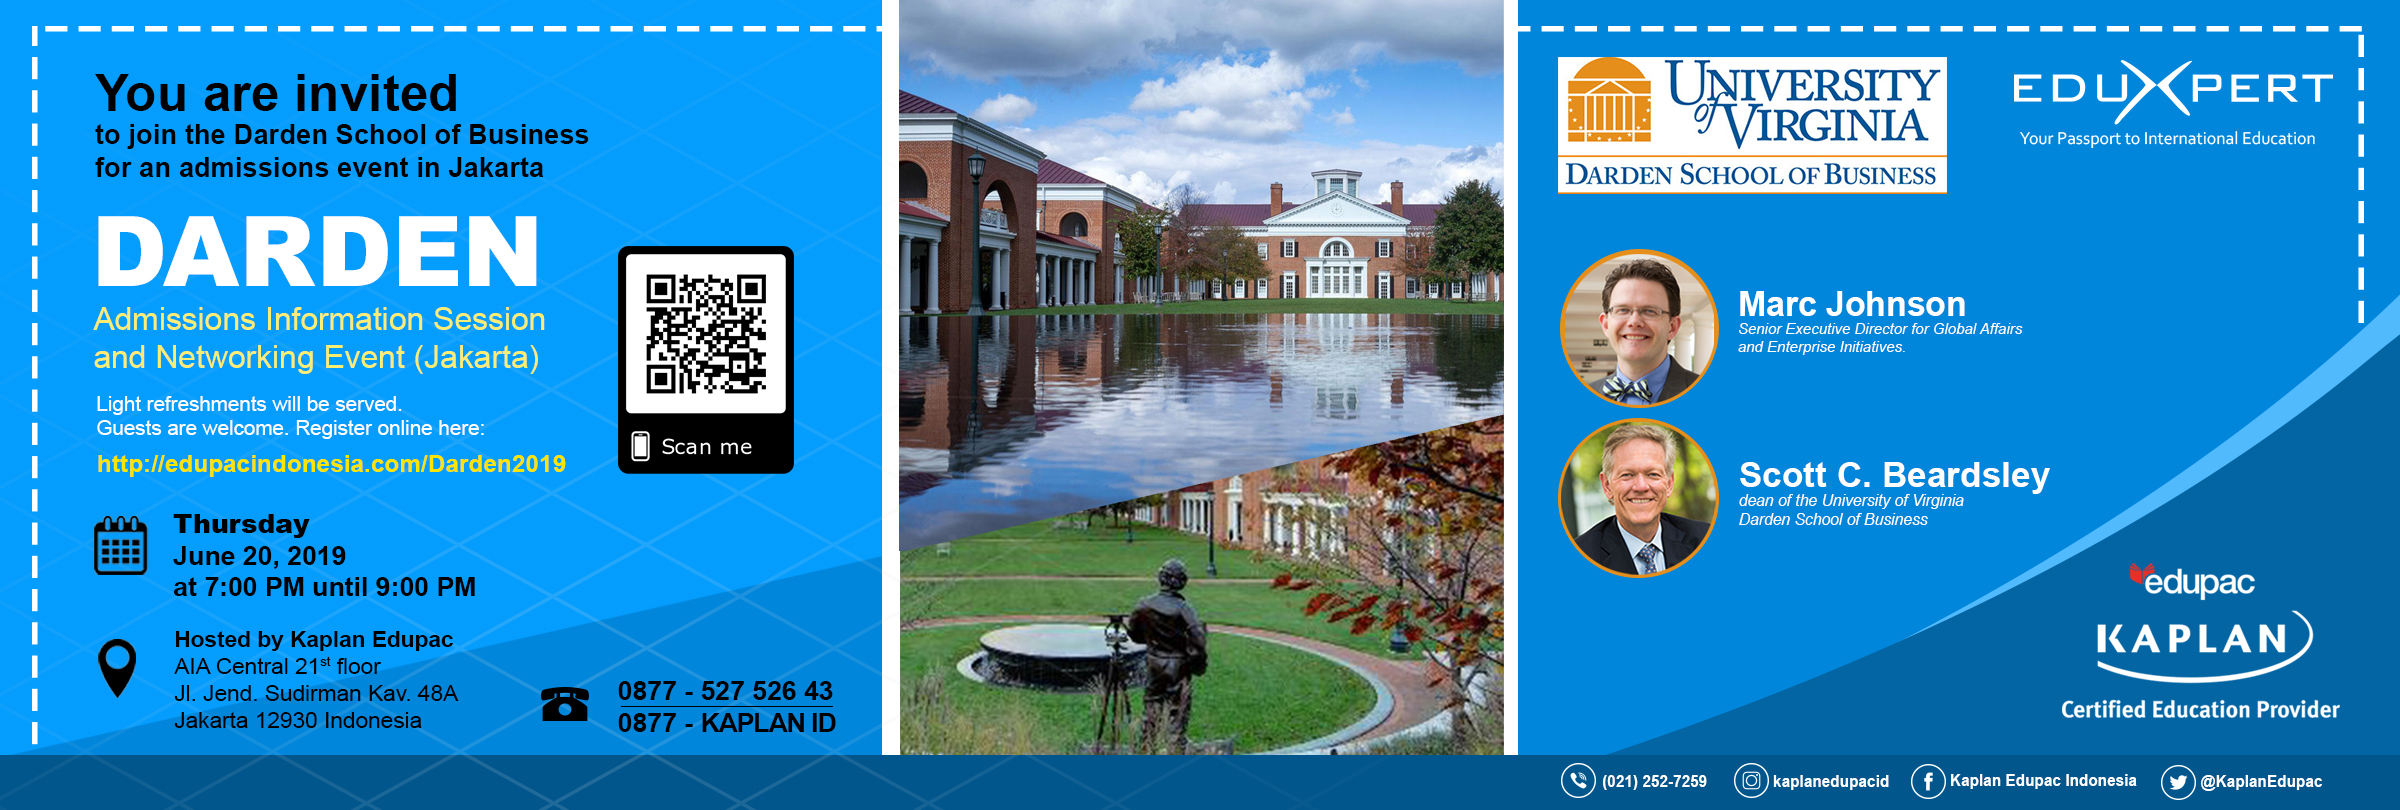 Darden will offer application fee waivers to any attendees who are applying to the Full-time MBA program.